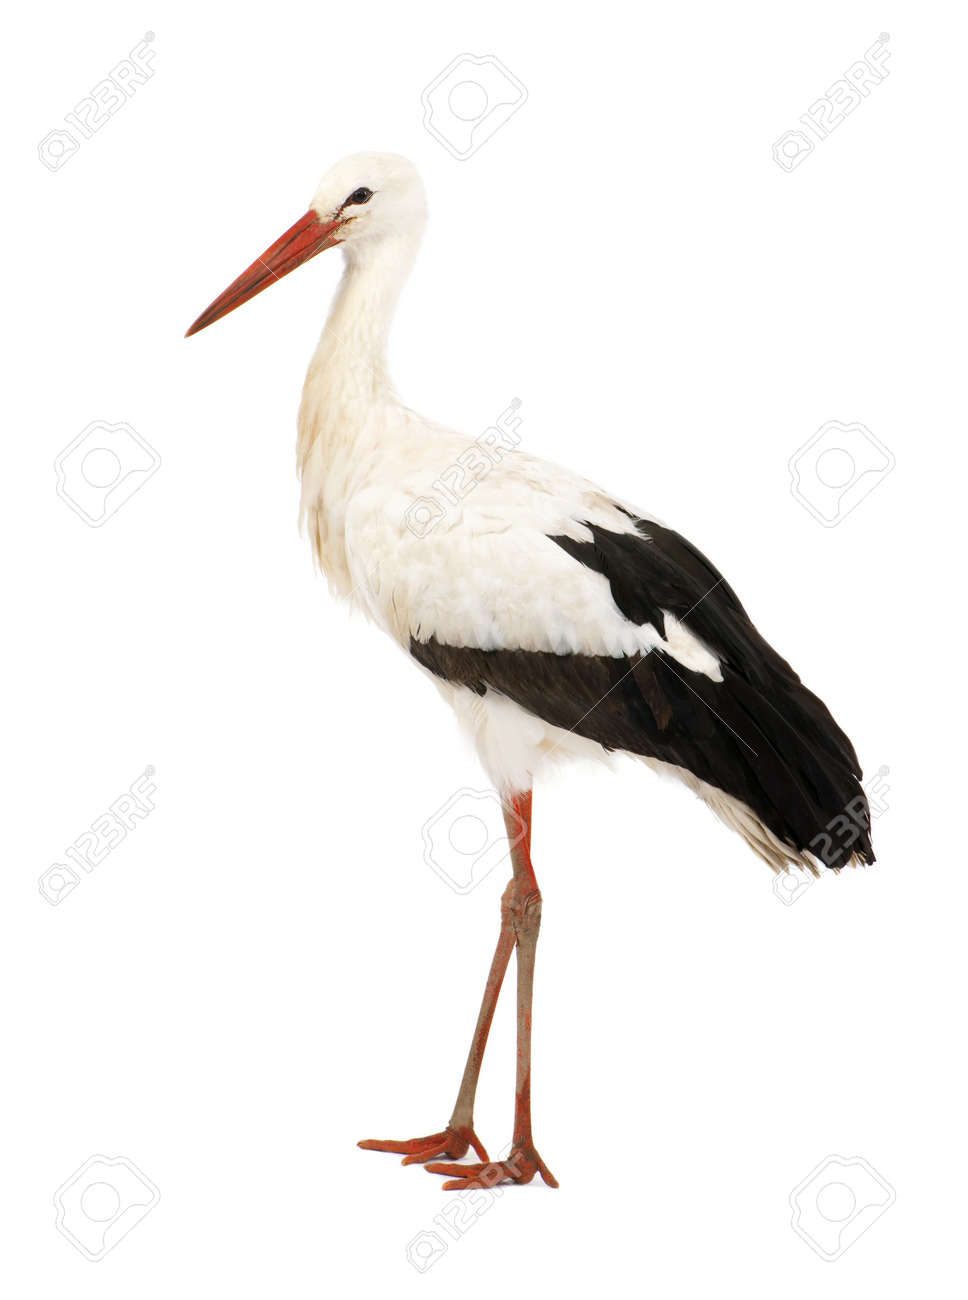 White Stork - Ciconia ciconia (18 months) in front of a white background Standard-Bild - 4455343